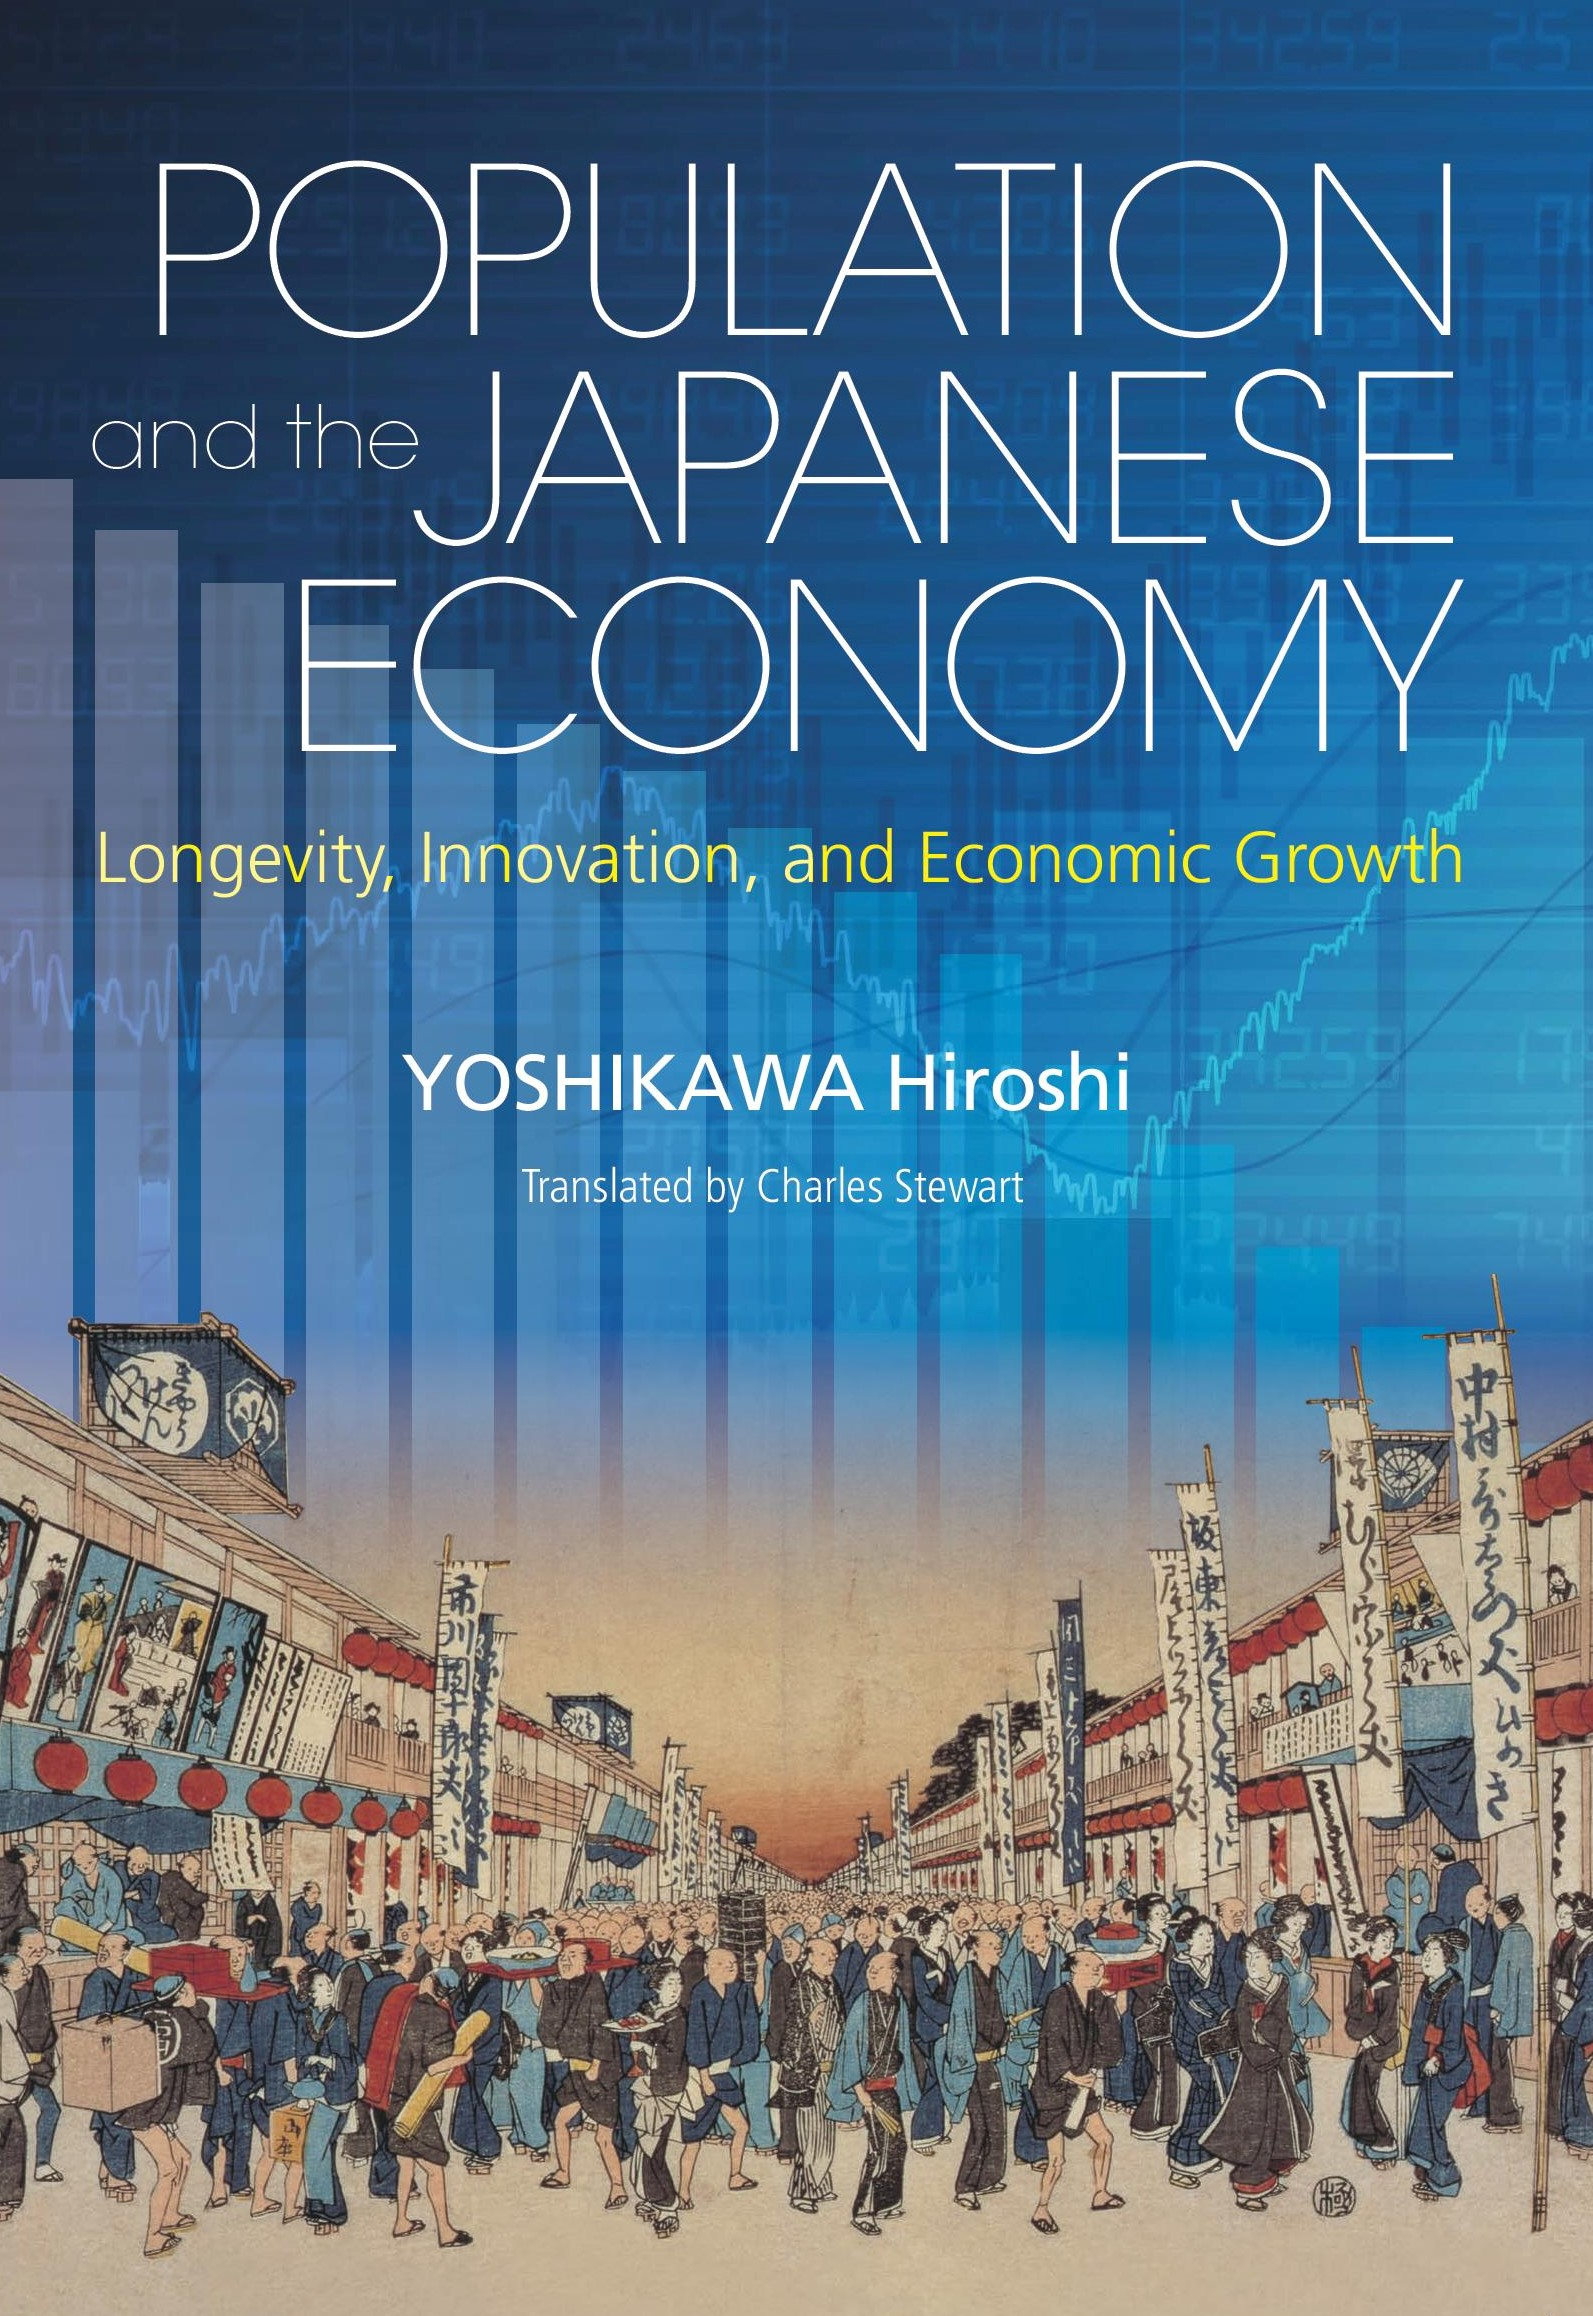 Population and the Japanese Economy: Longevity, Innovation, and Economic Growth